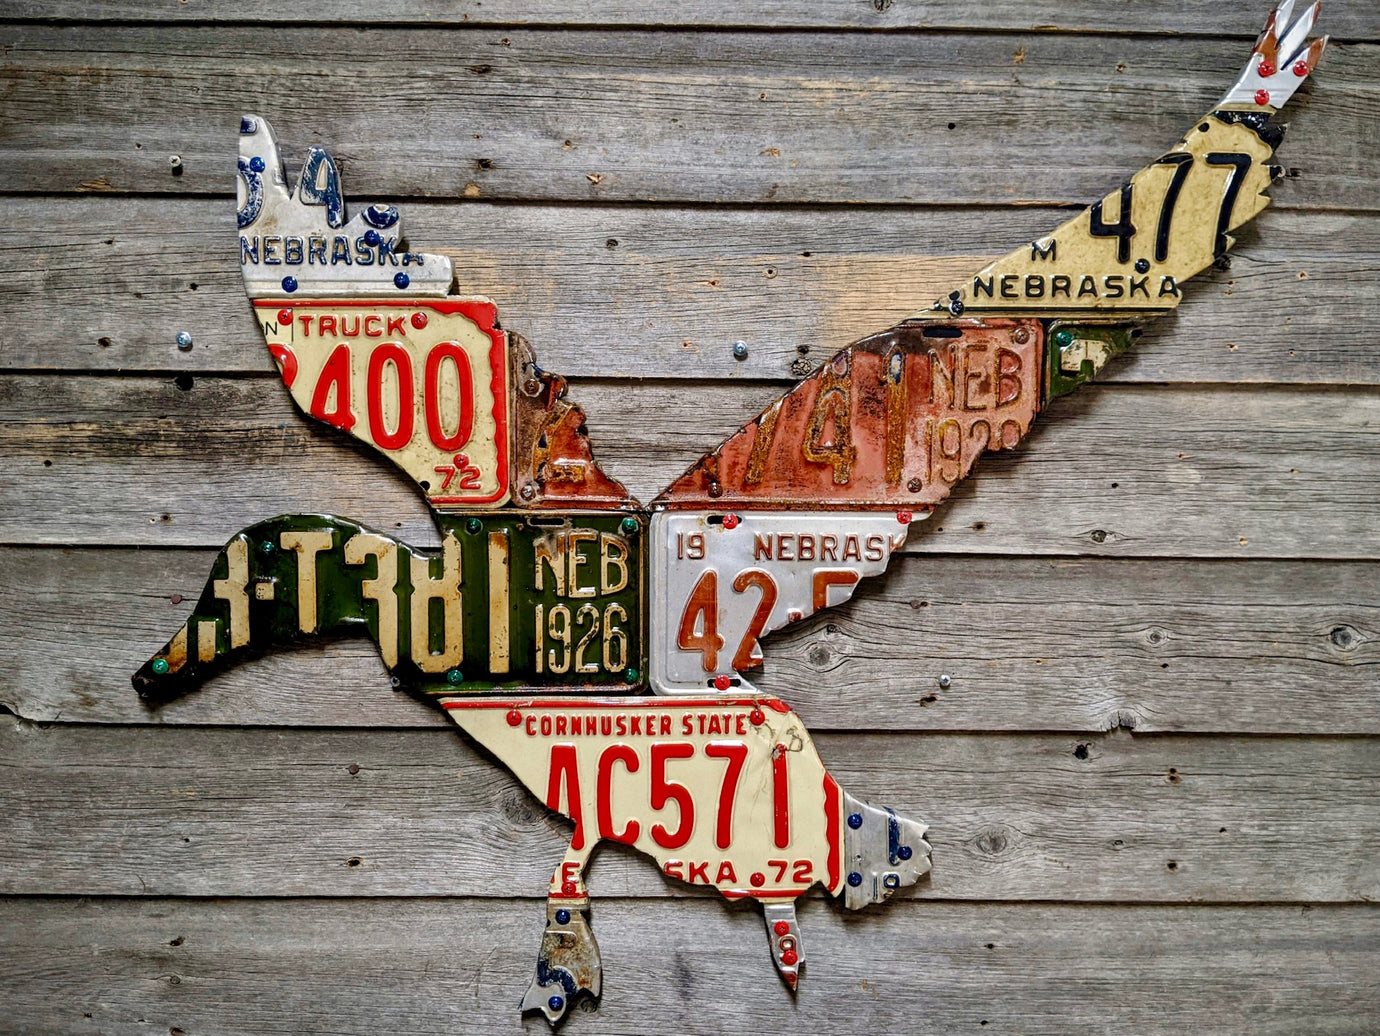 Nebraska Duck License Plate Art